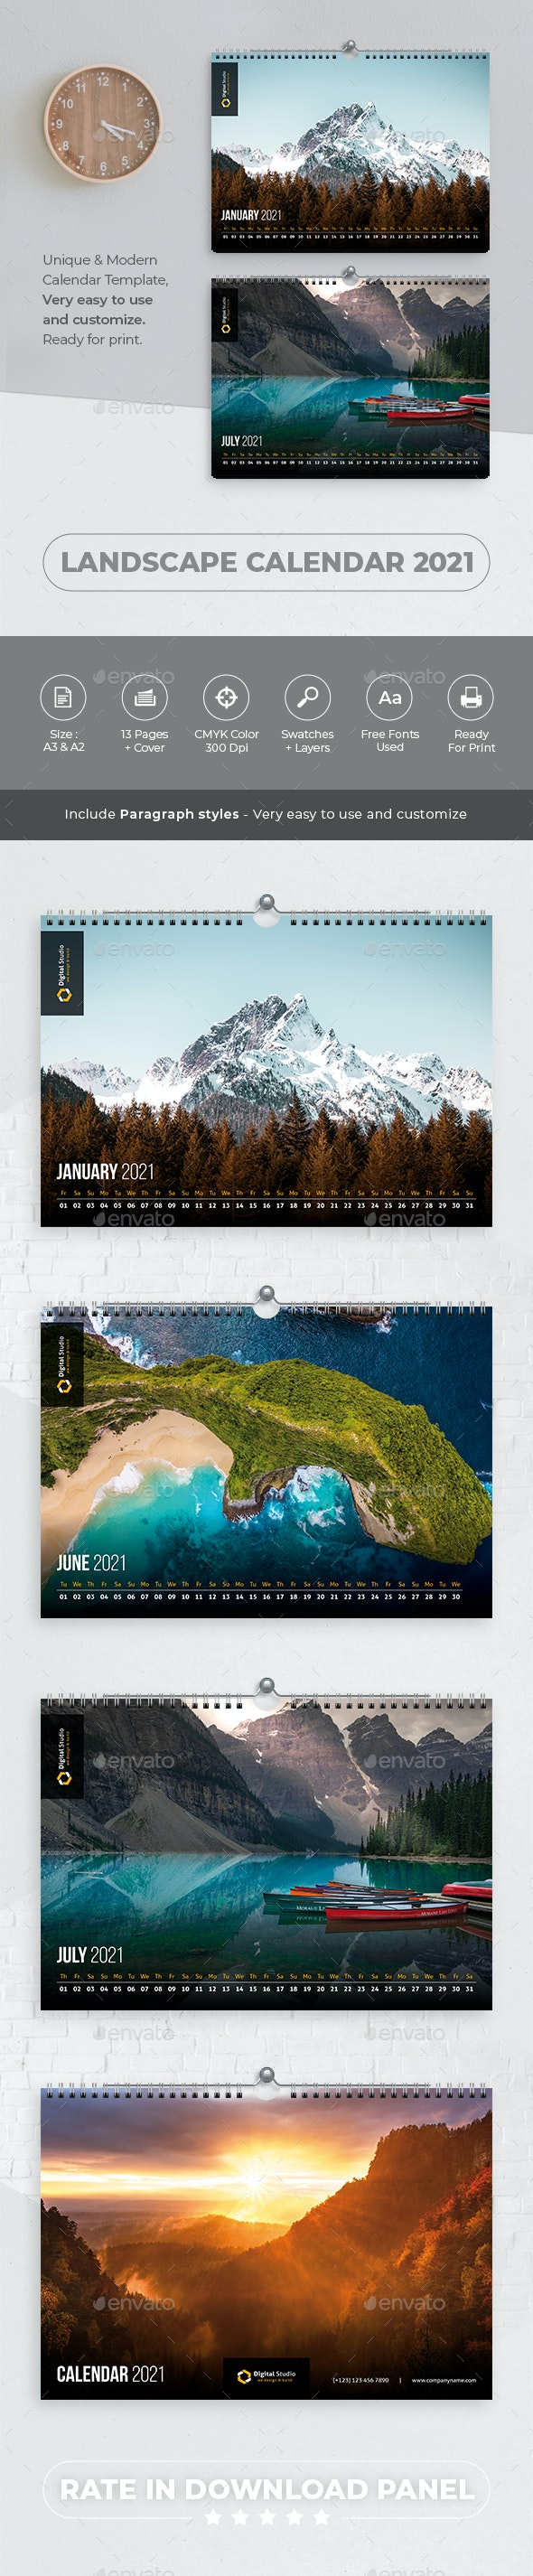 Landscape Calendar 2021 - Calendars Stationery